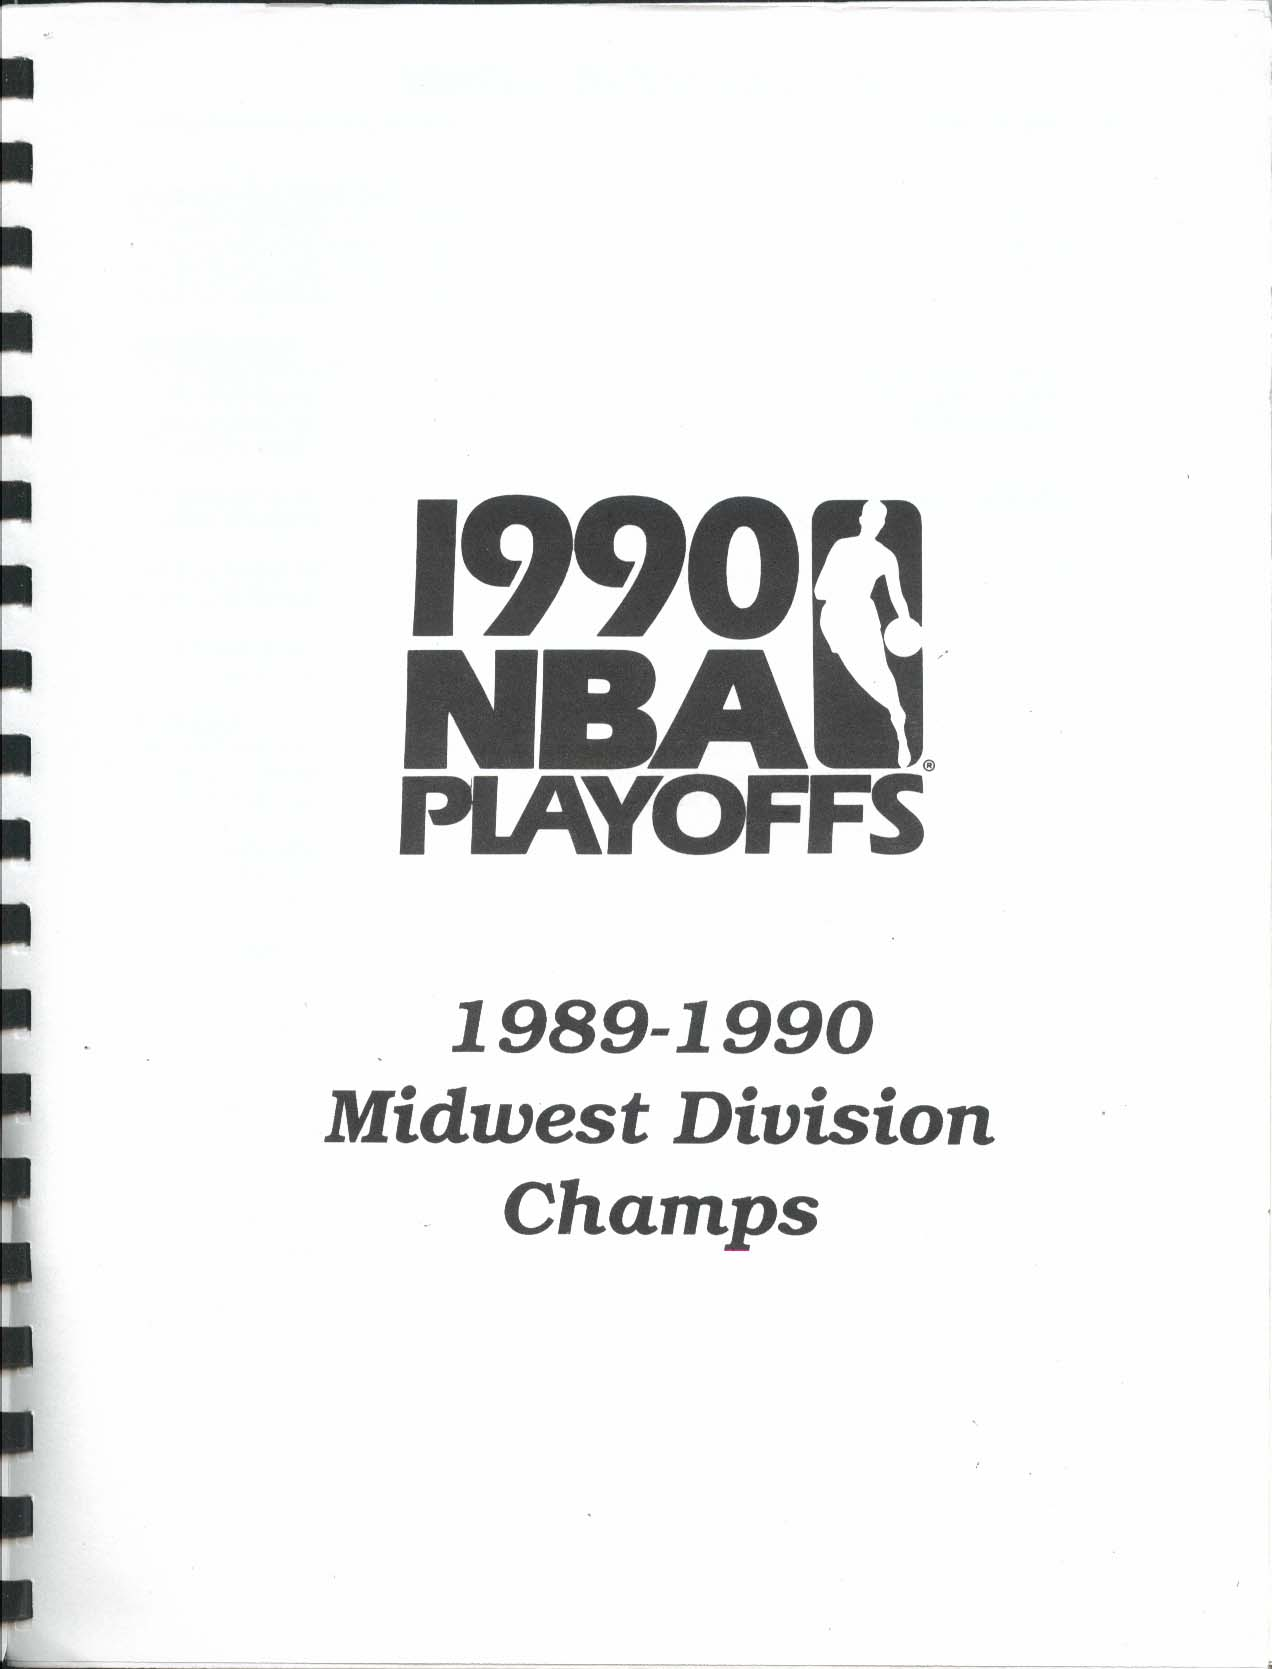 Image for San Antonio Spurs 1990 Playoffs Media Information Book